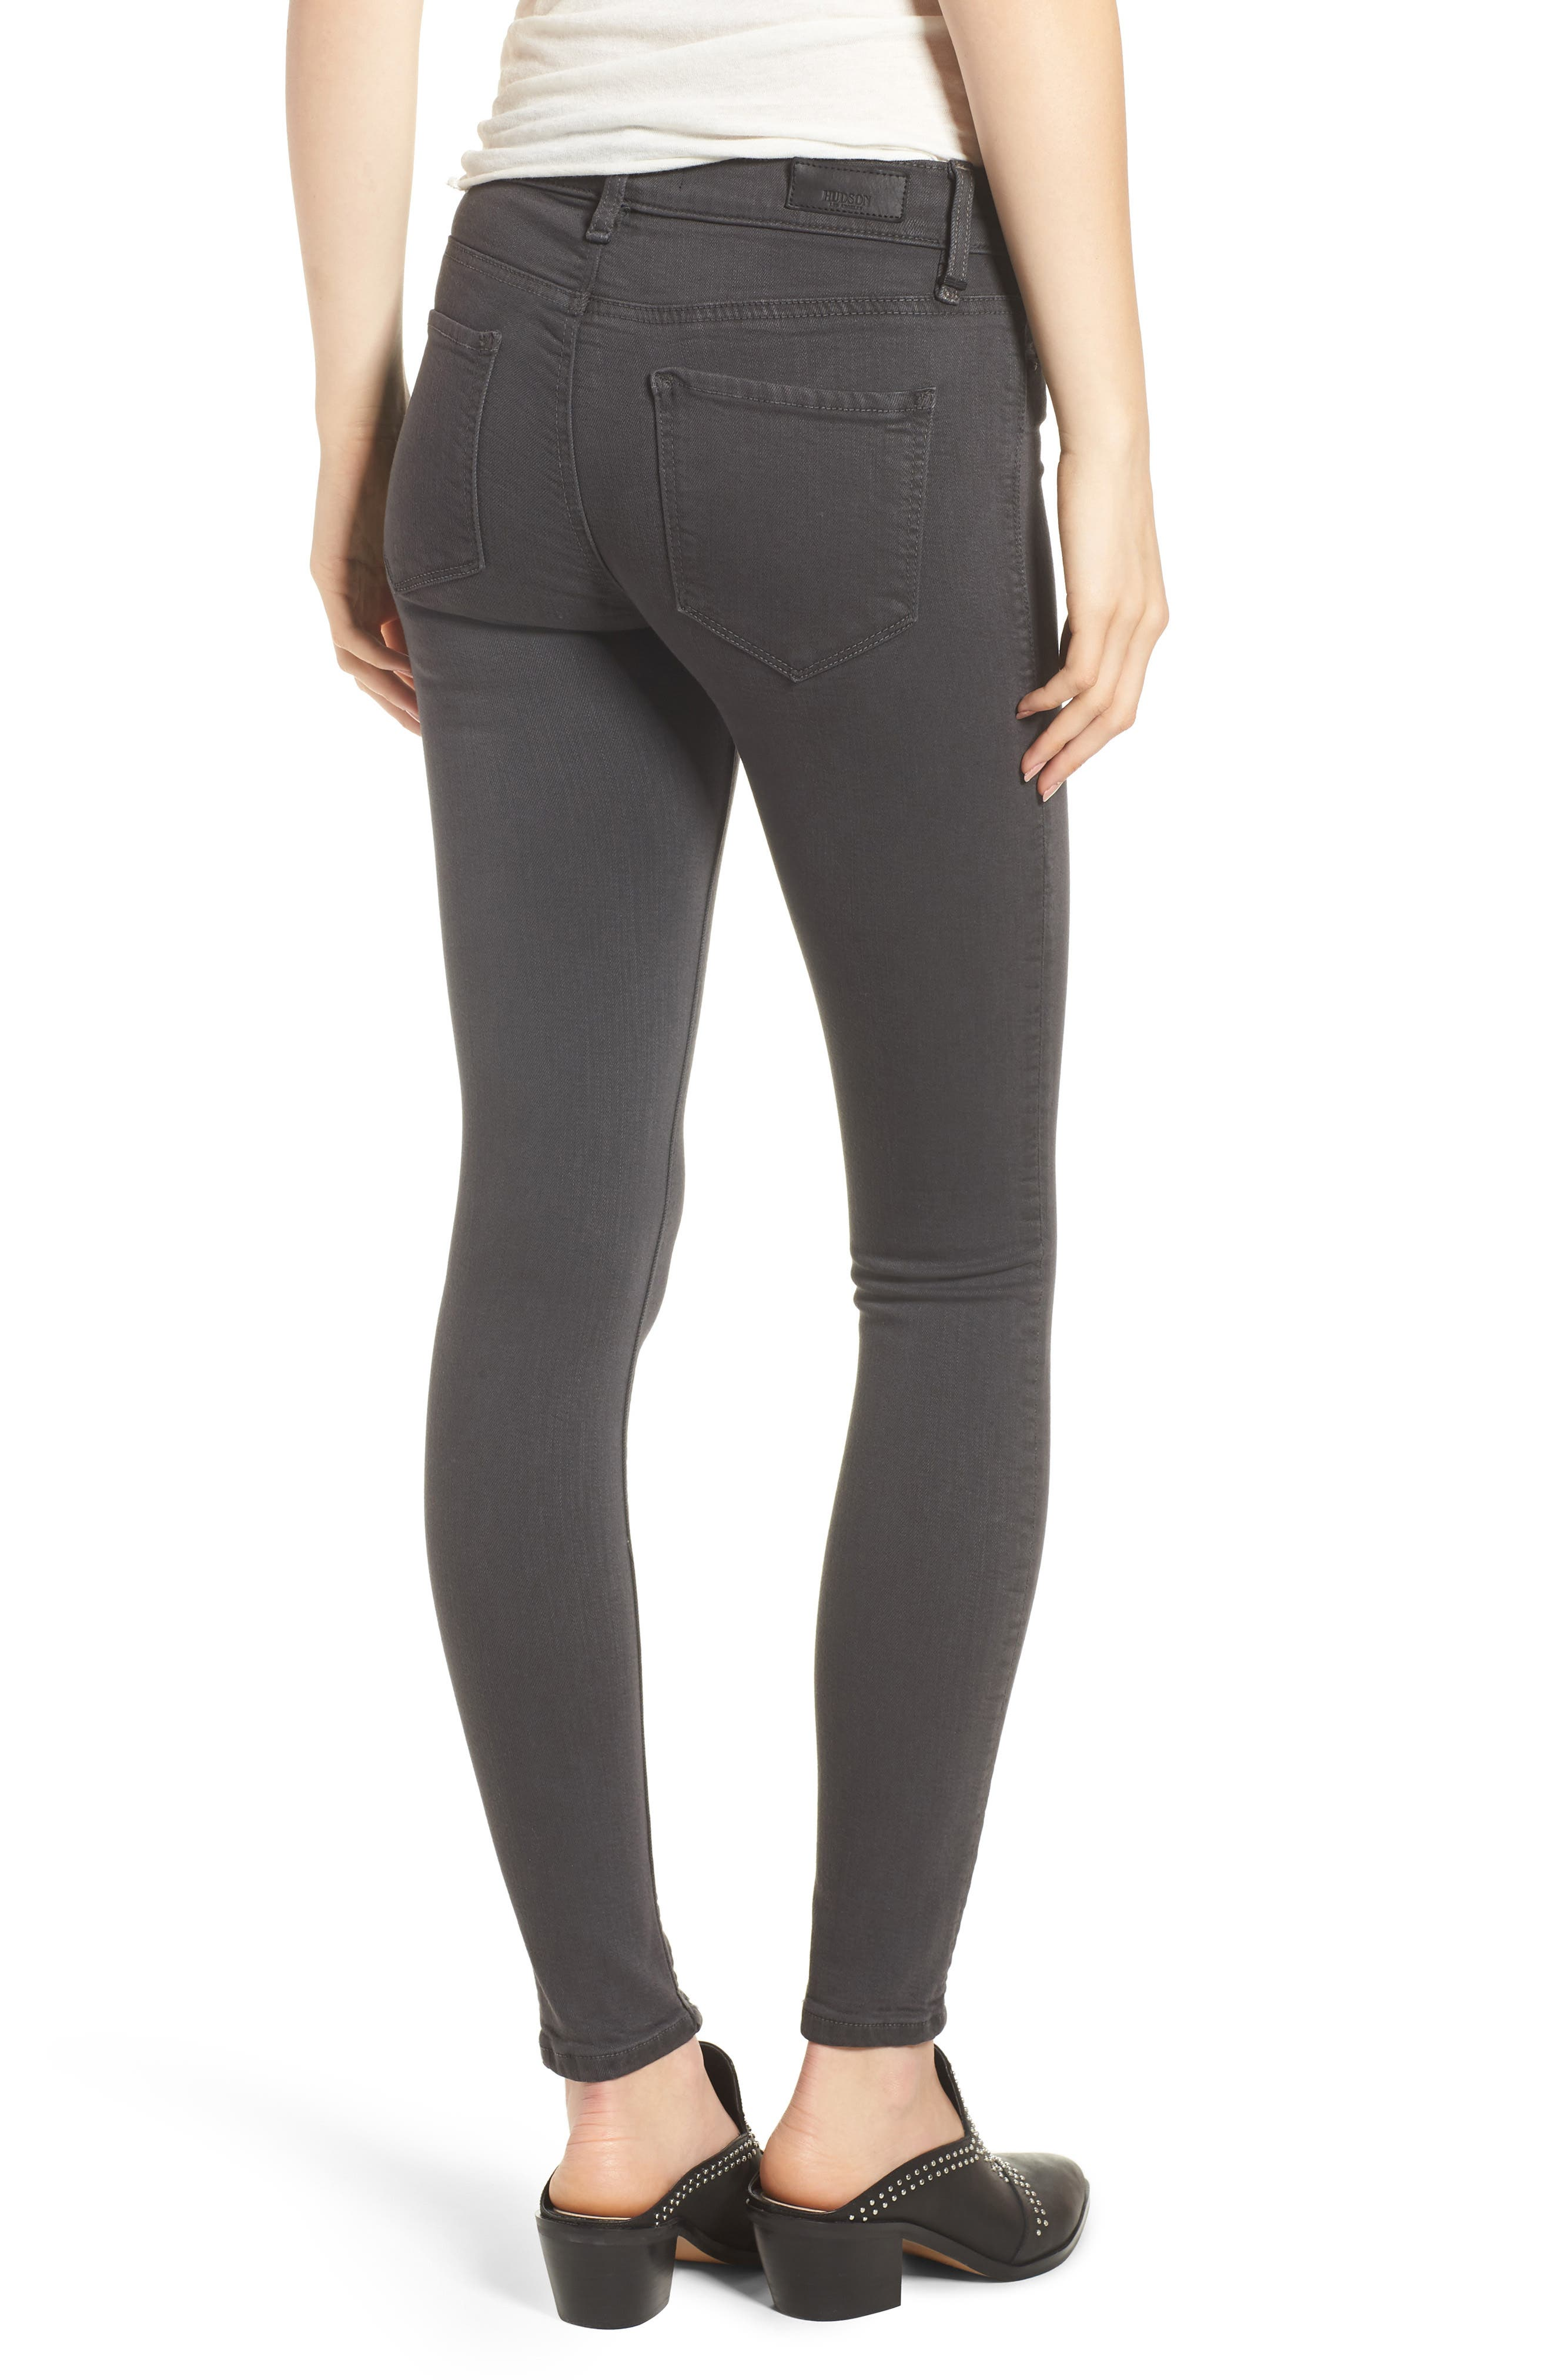 HudsonJeans Nico Coated Super Skinny Jeans,                             Alternate thumbnail 2, color,                             Distressed Graphite